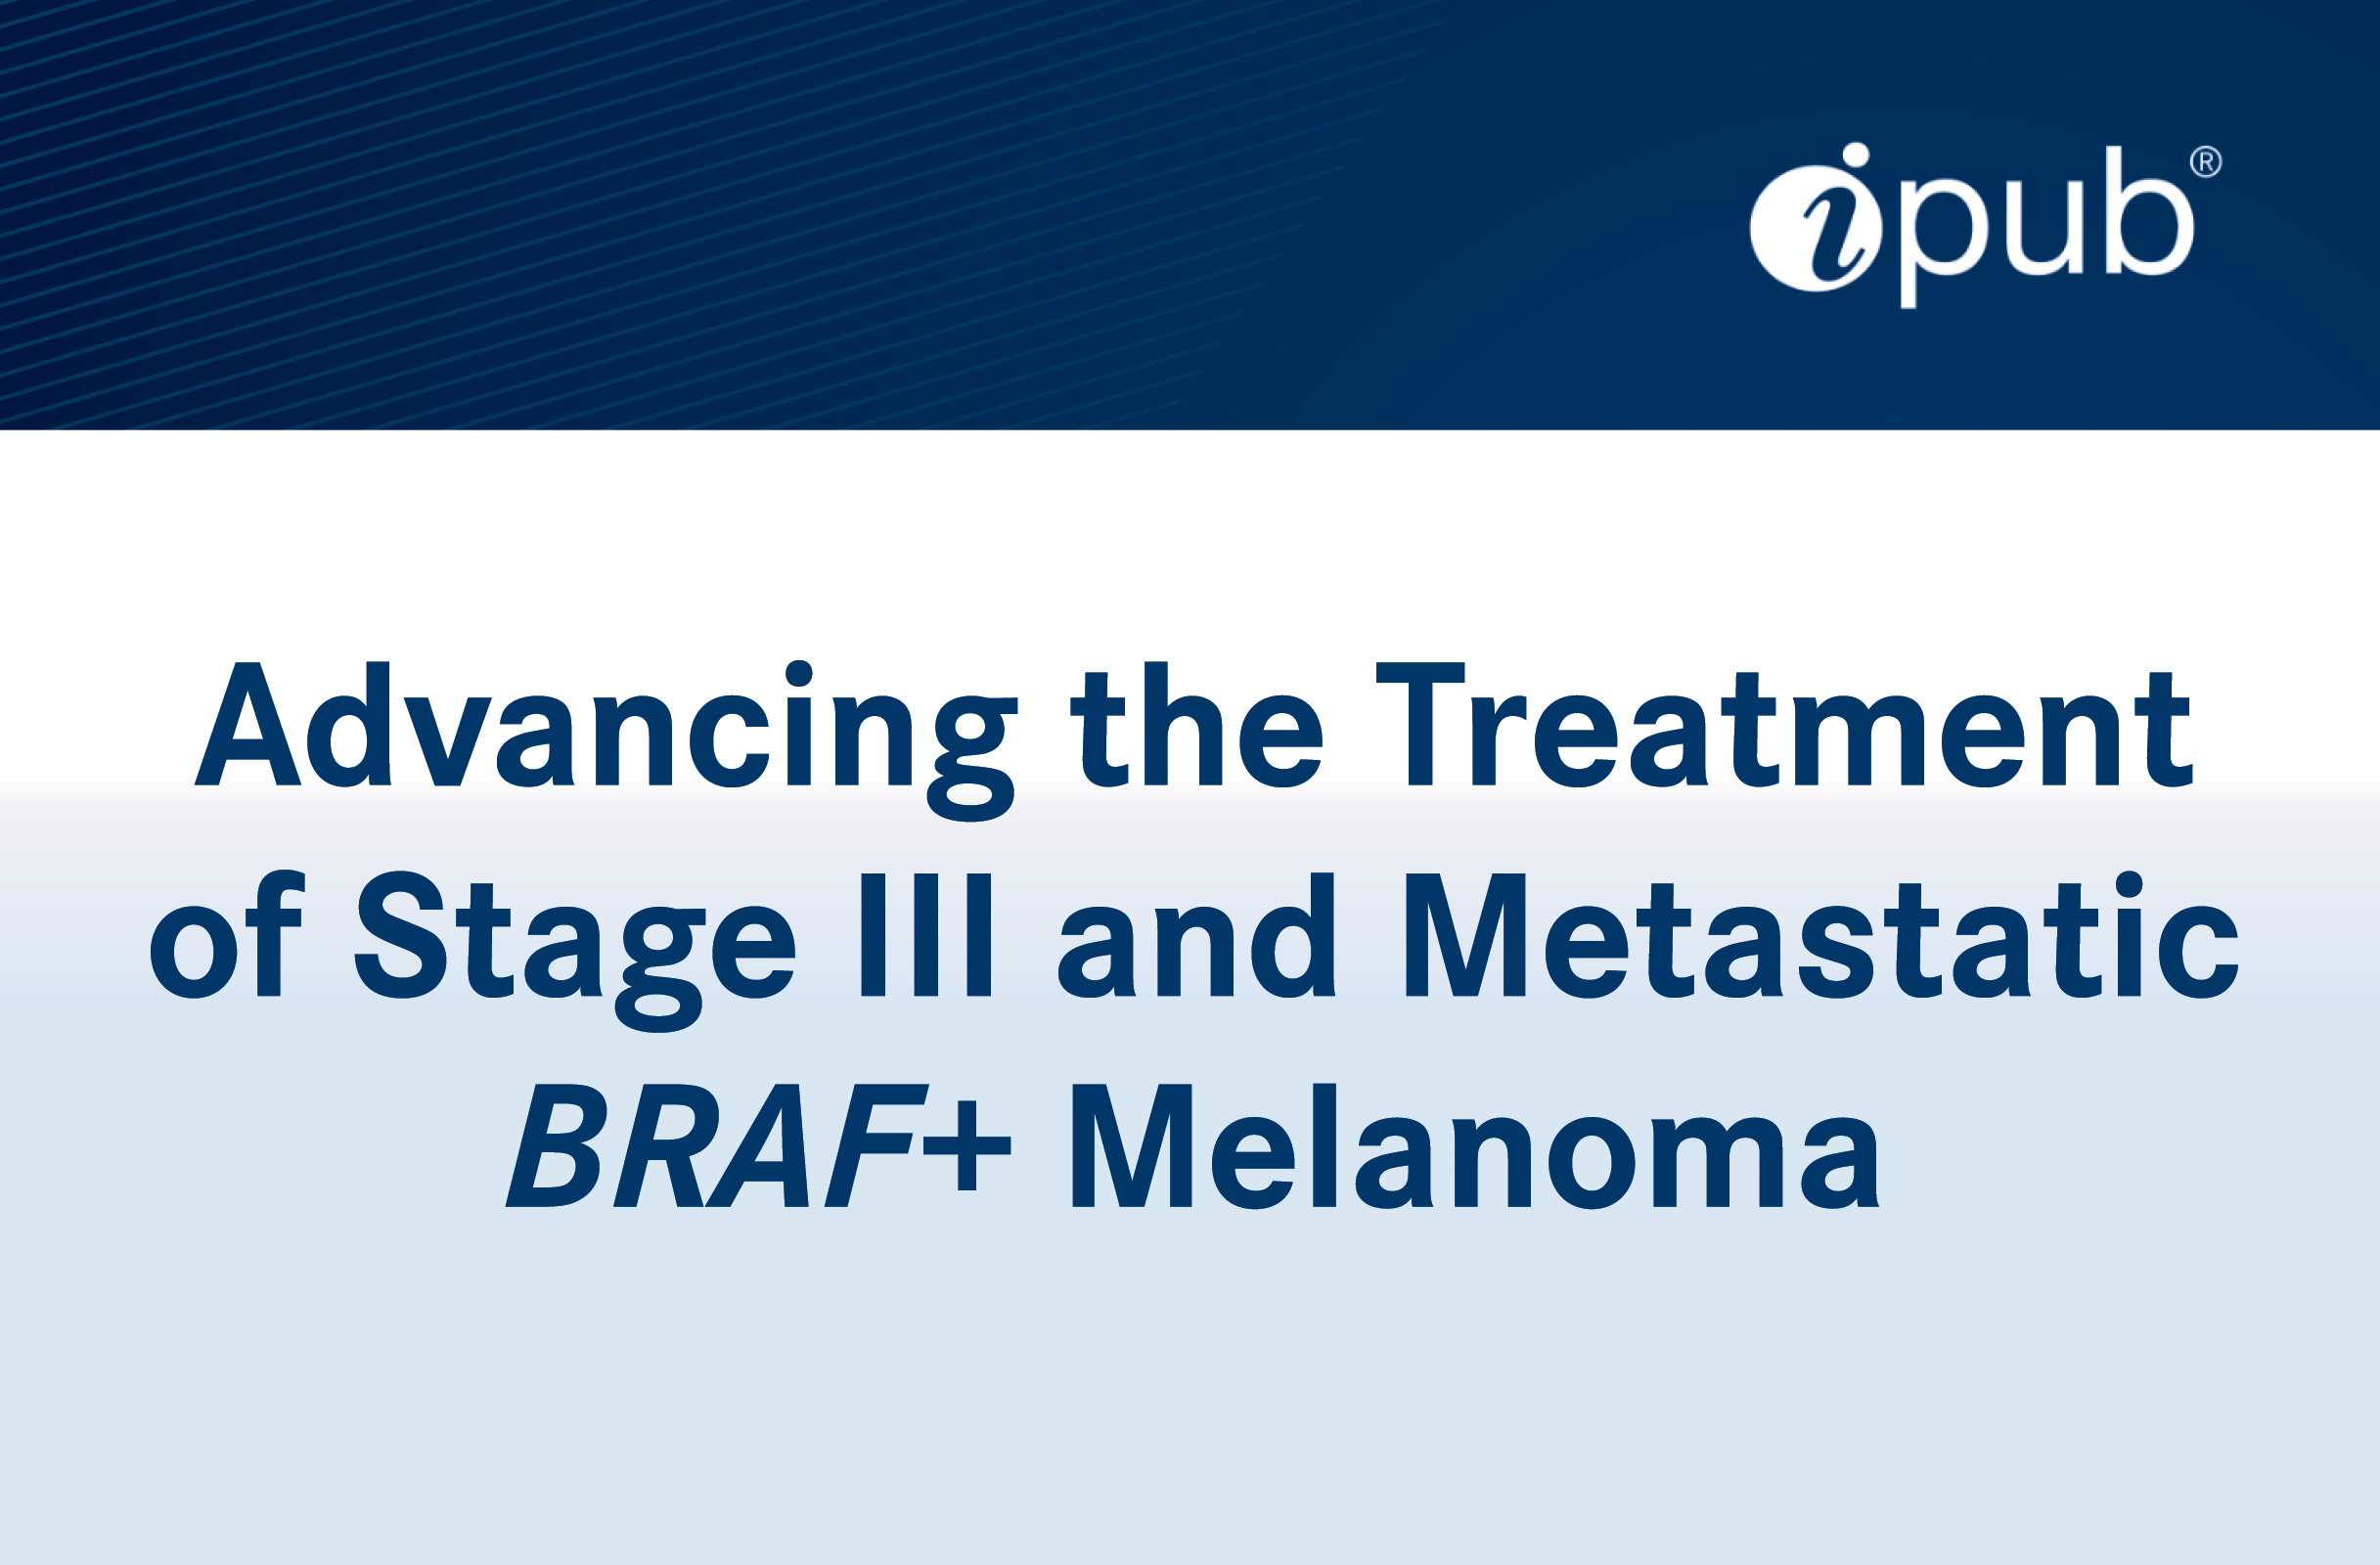 Advancing the Treatment of Stage III and MetastaticBRAF+ Melanoma